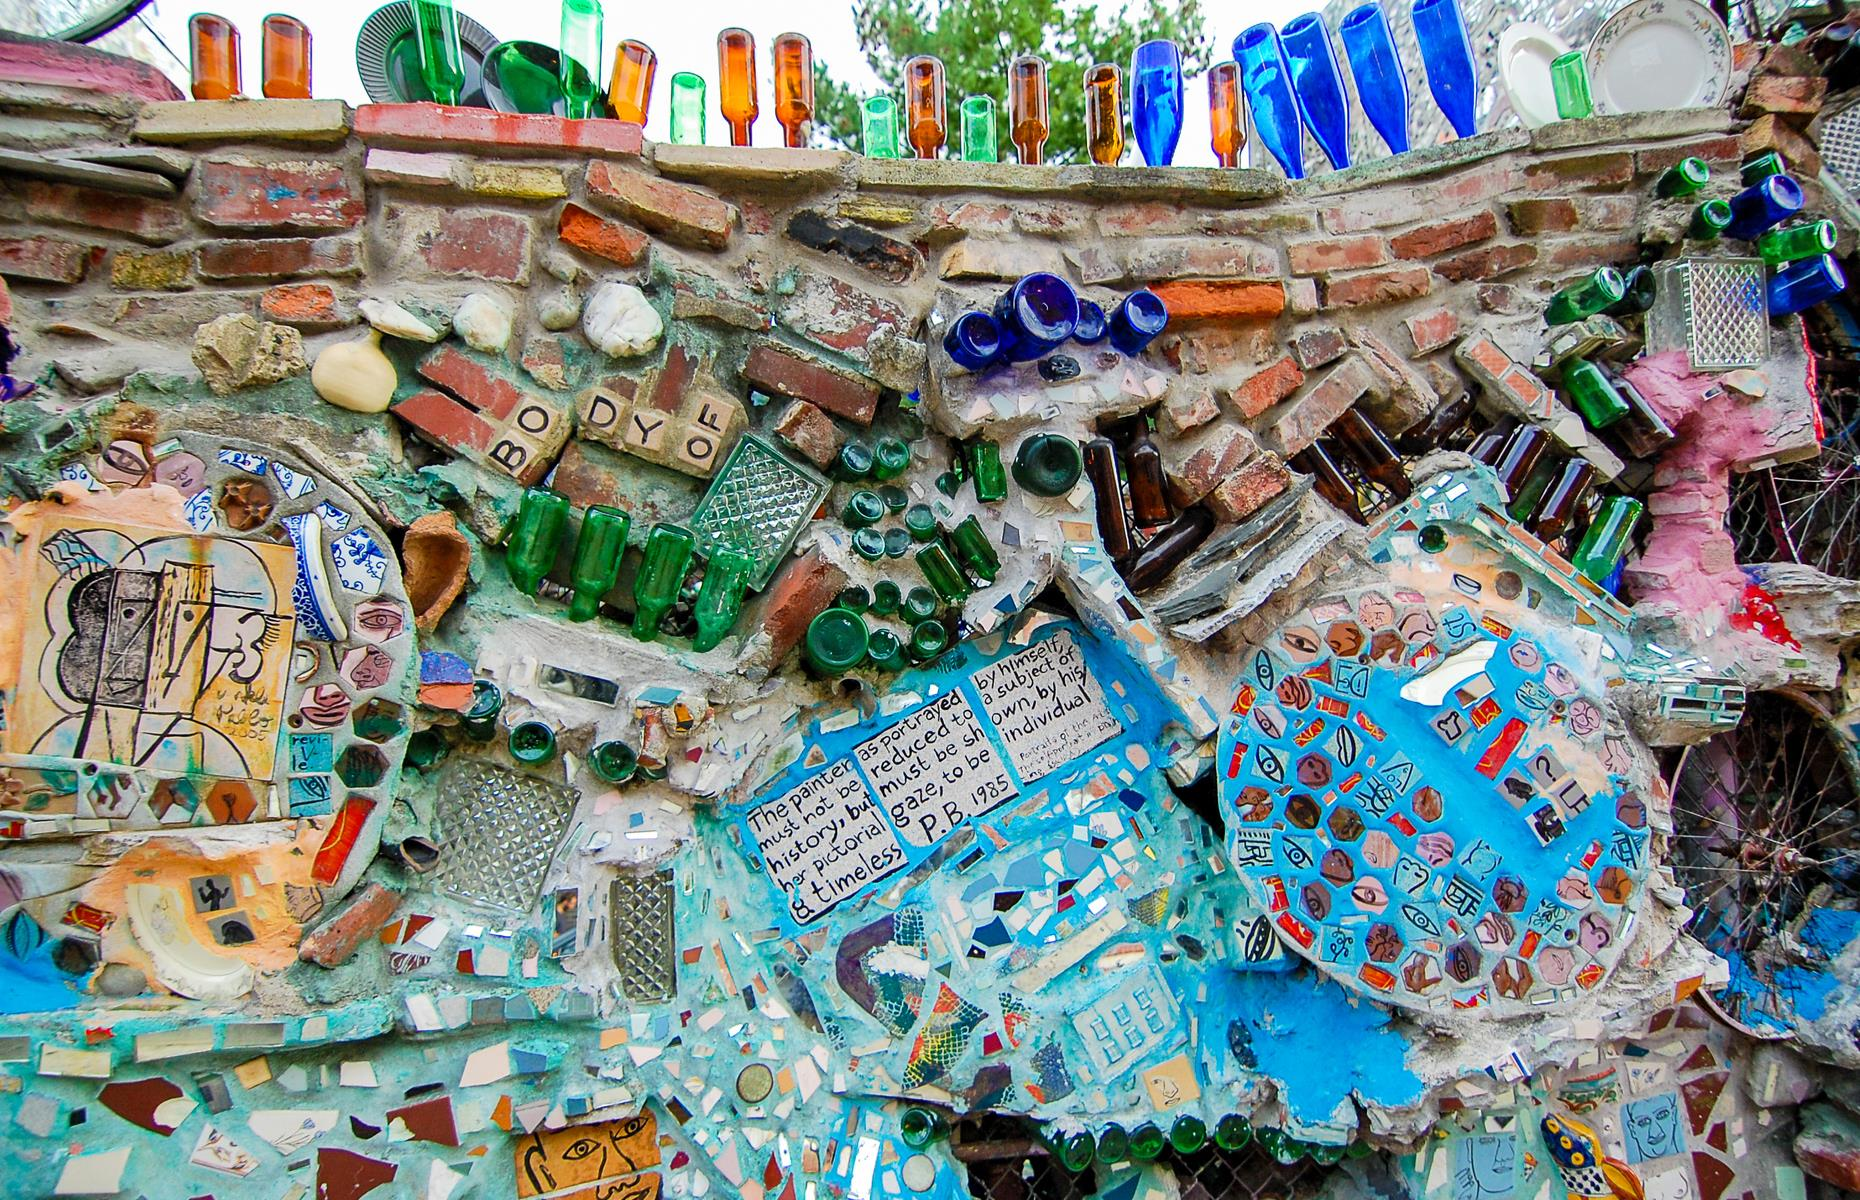 Slide 7 of 37: An open-air gallery, the Magic Gardens is a labyrinth of mosaic passageways created by Philadelphia artist Isaiah Zagar. The first mirrored tile was placed back in 1991, a stone's throw from Zagar's studio. Today, the installation stretches around half a block.